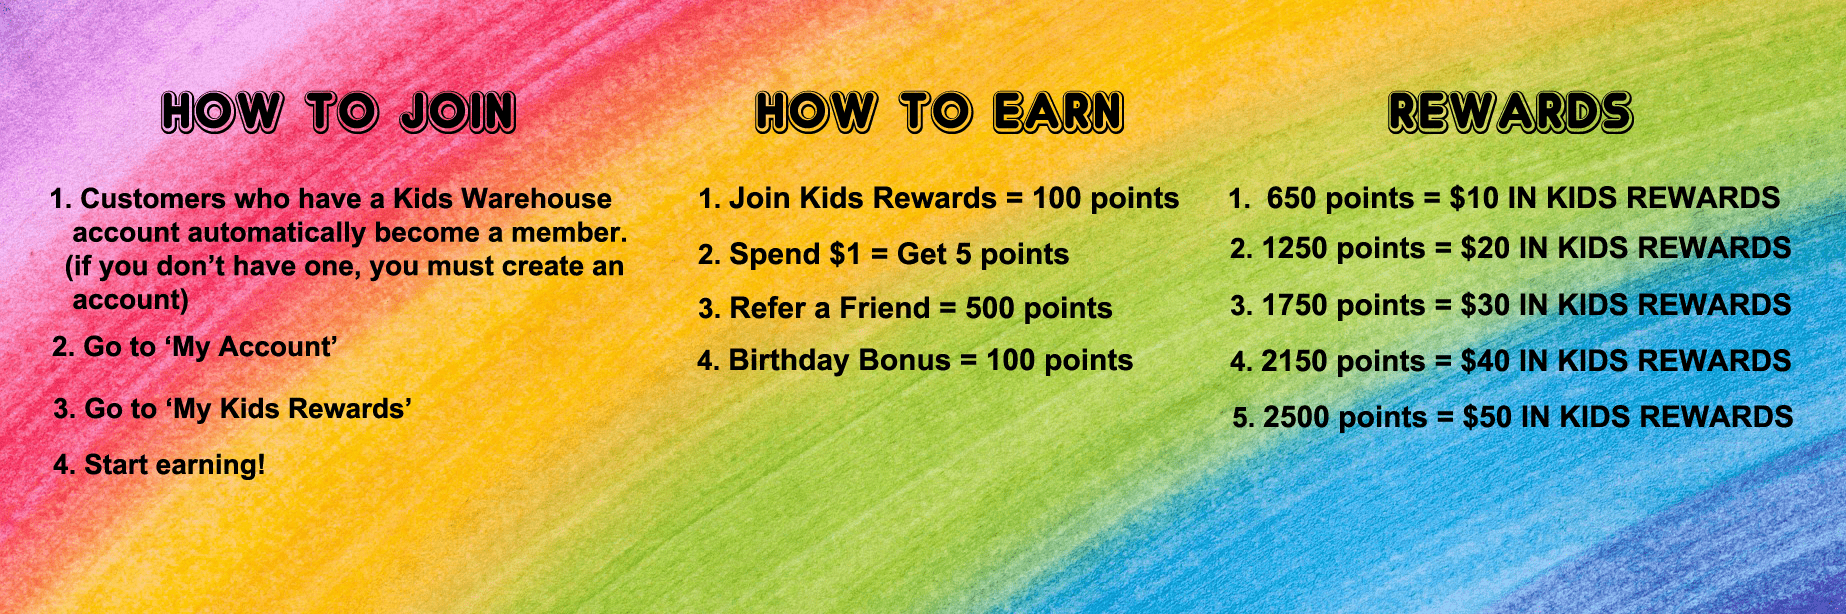 kids-rewards-footer-min.png